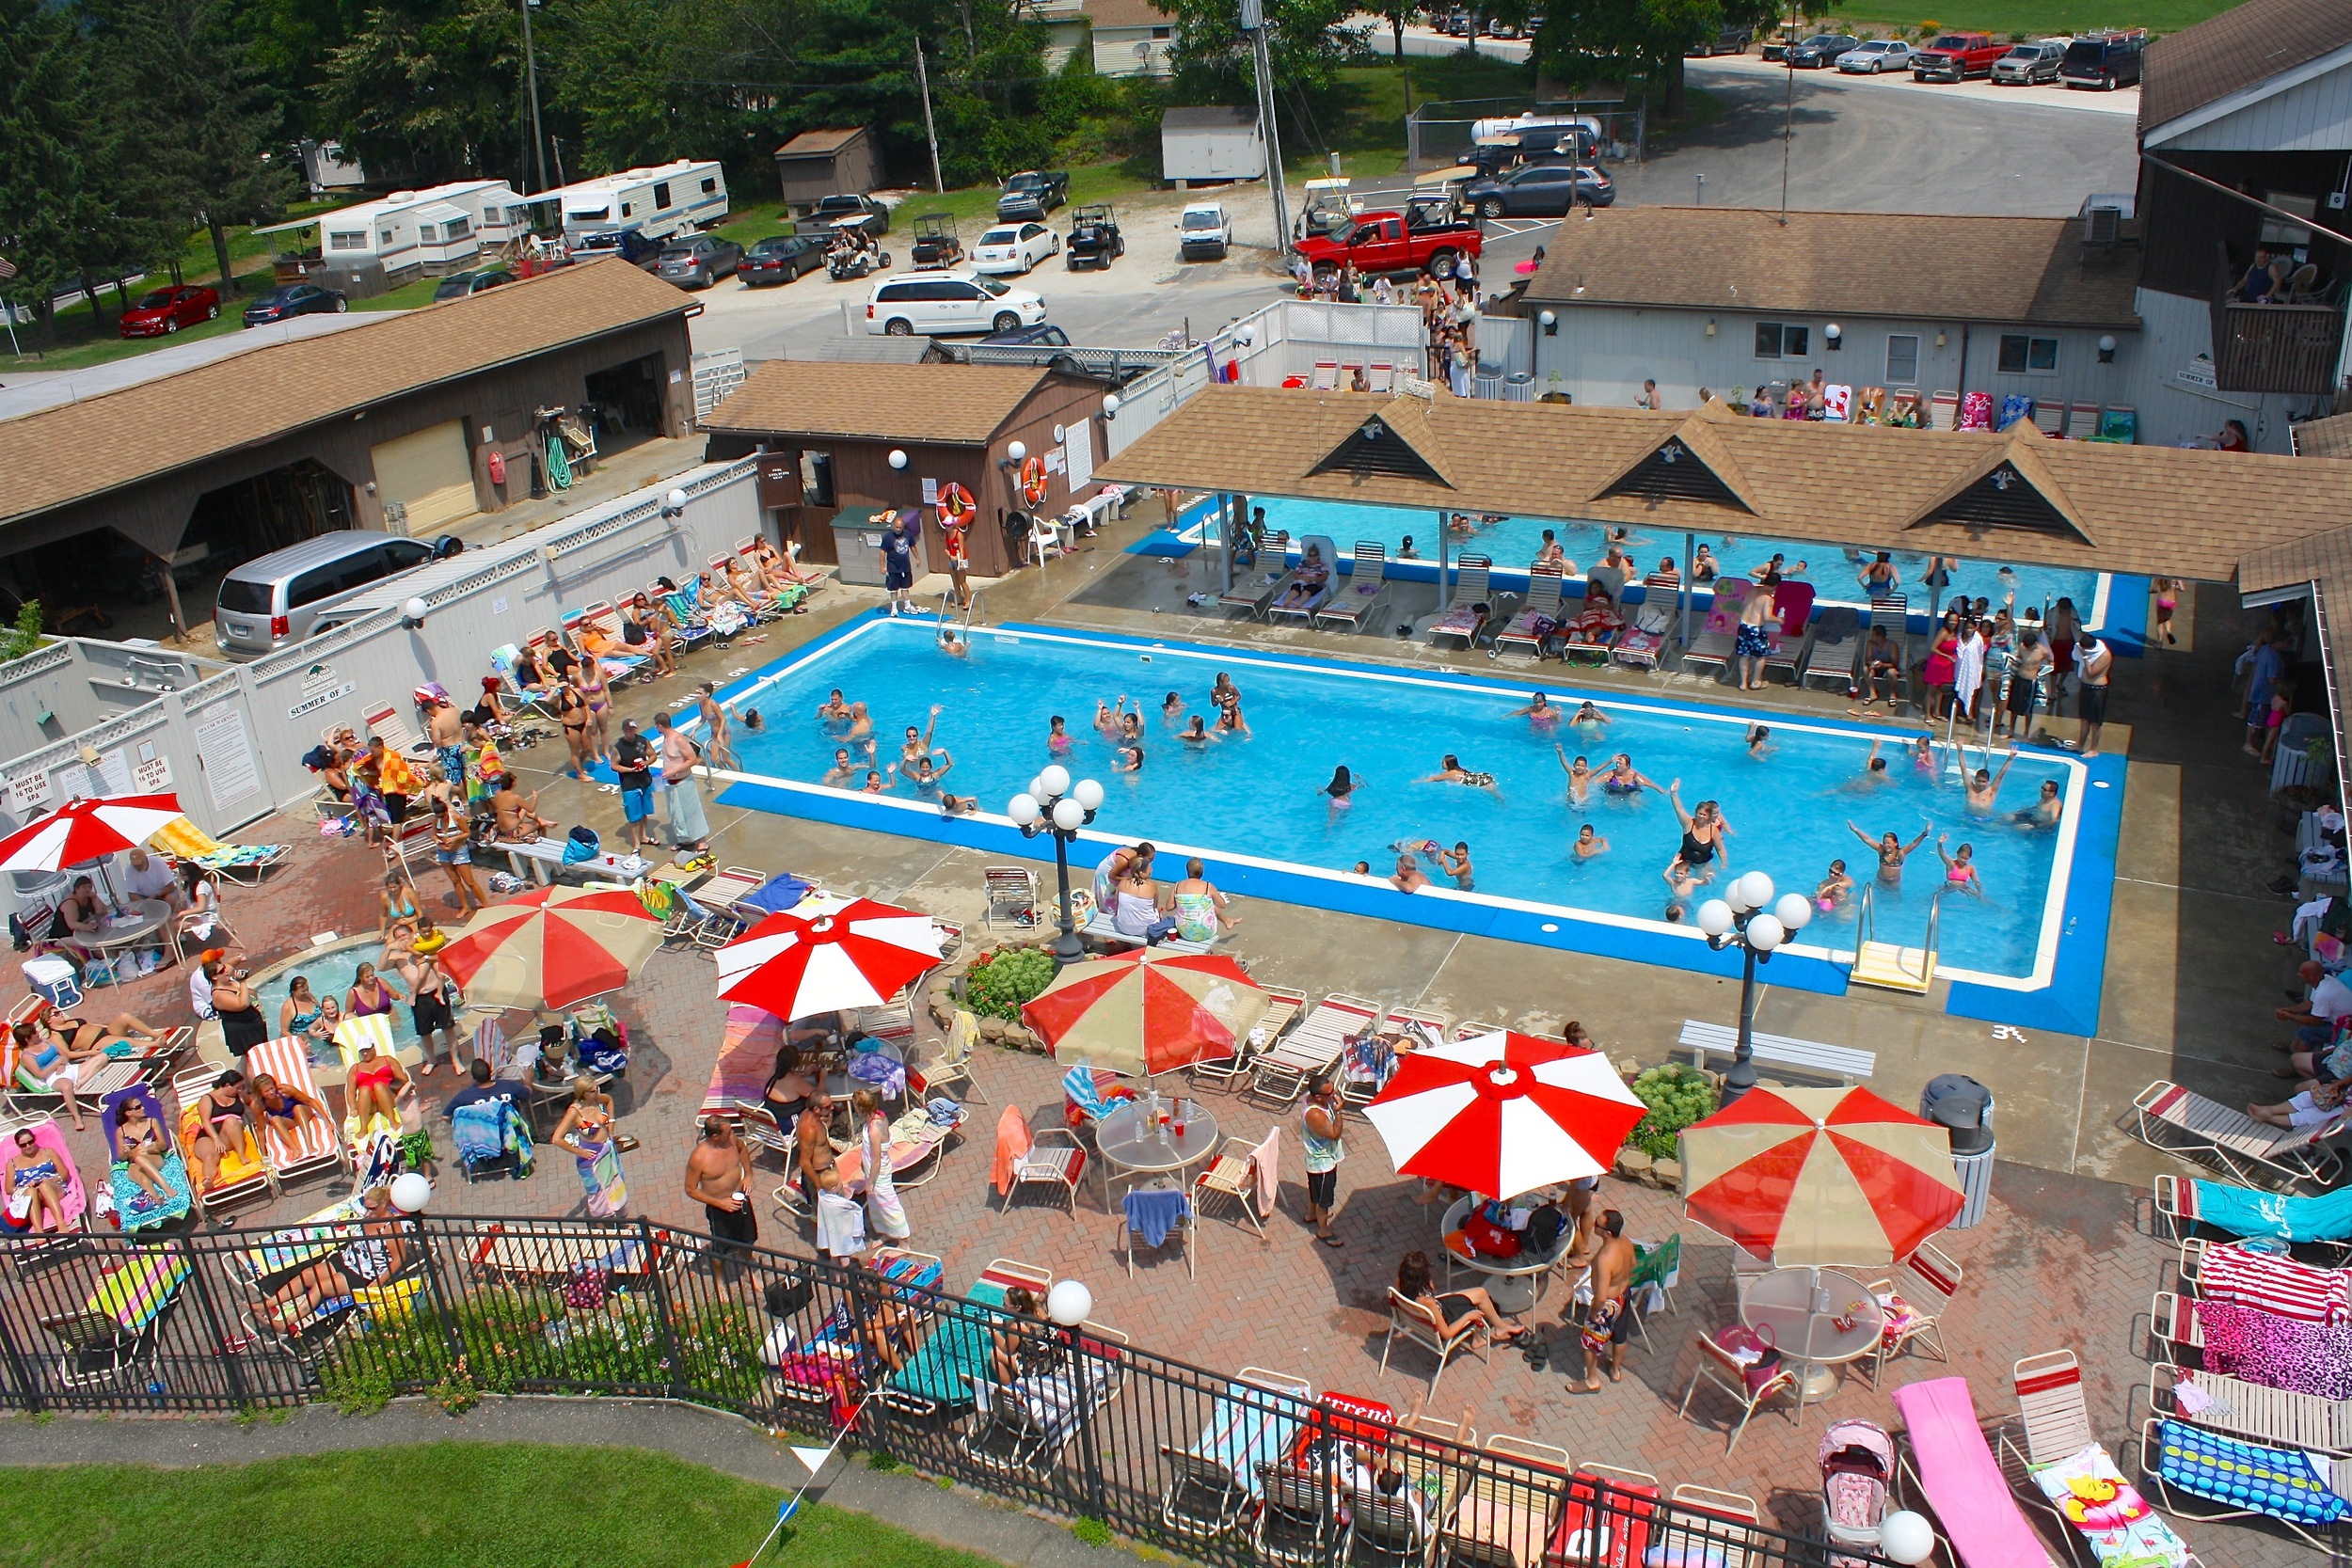 arial shot of the pool area